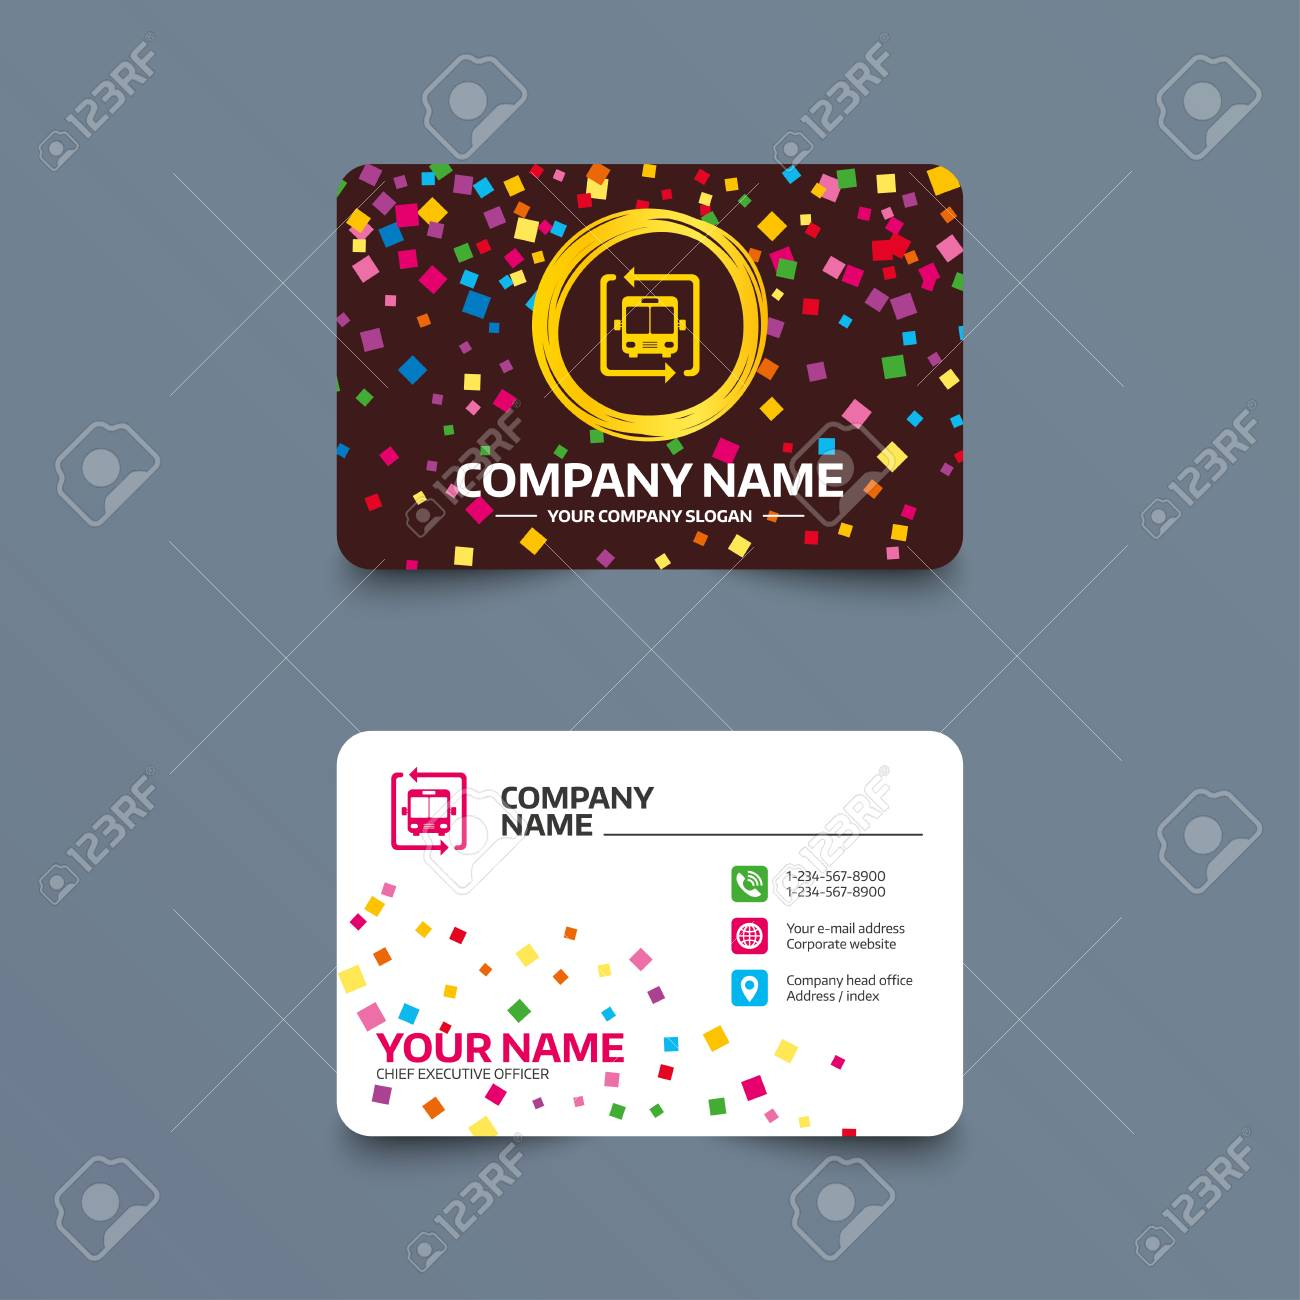 Business card template with confetti pieces bus shuttle icon business card template with confetti pieces bus shuttle icon public transport stop symbol wajeb Image collections